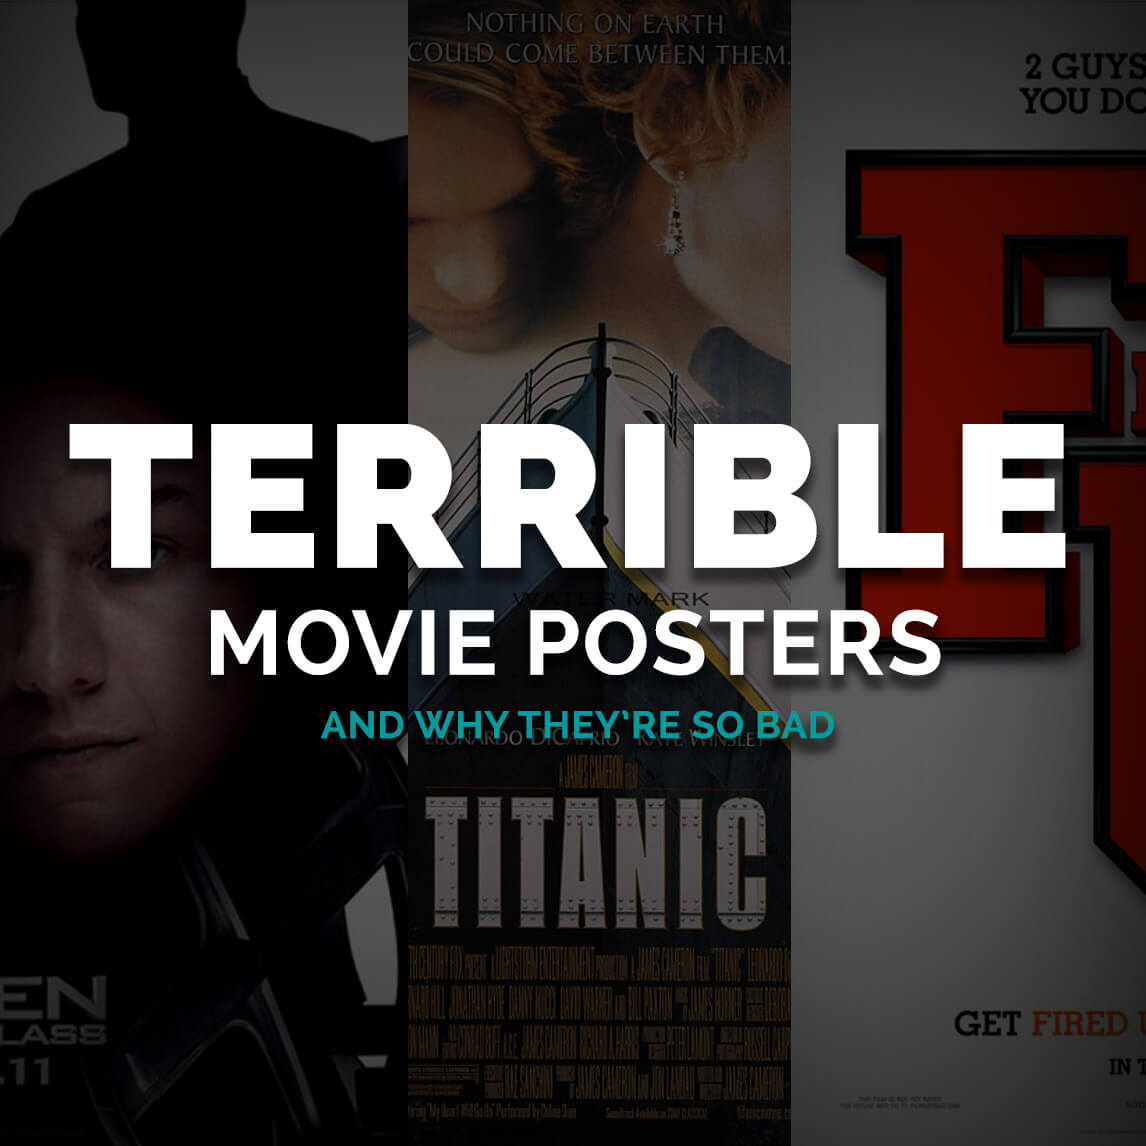 5 KEEN Designers Weigh in on Terrible Movie Posters